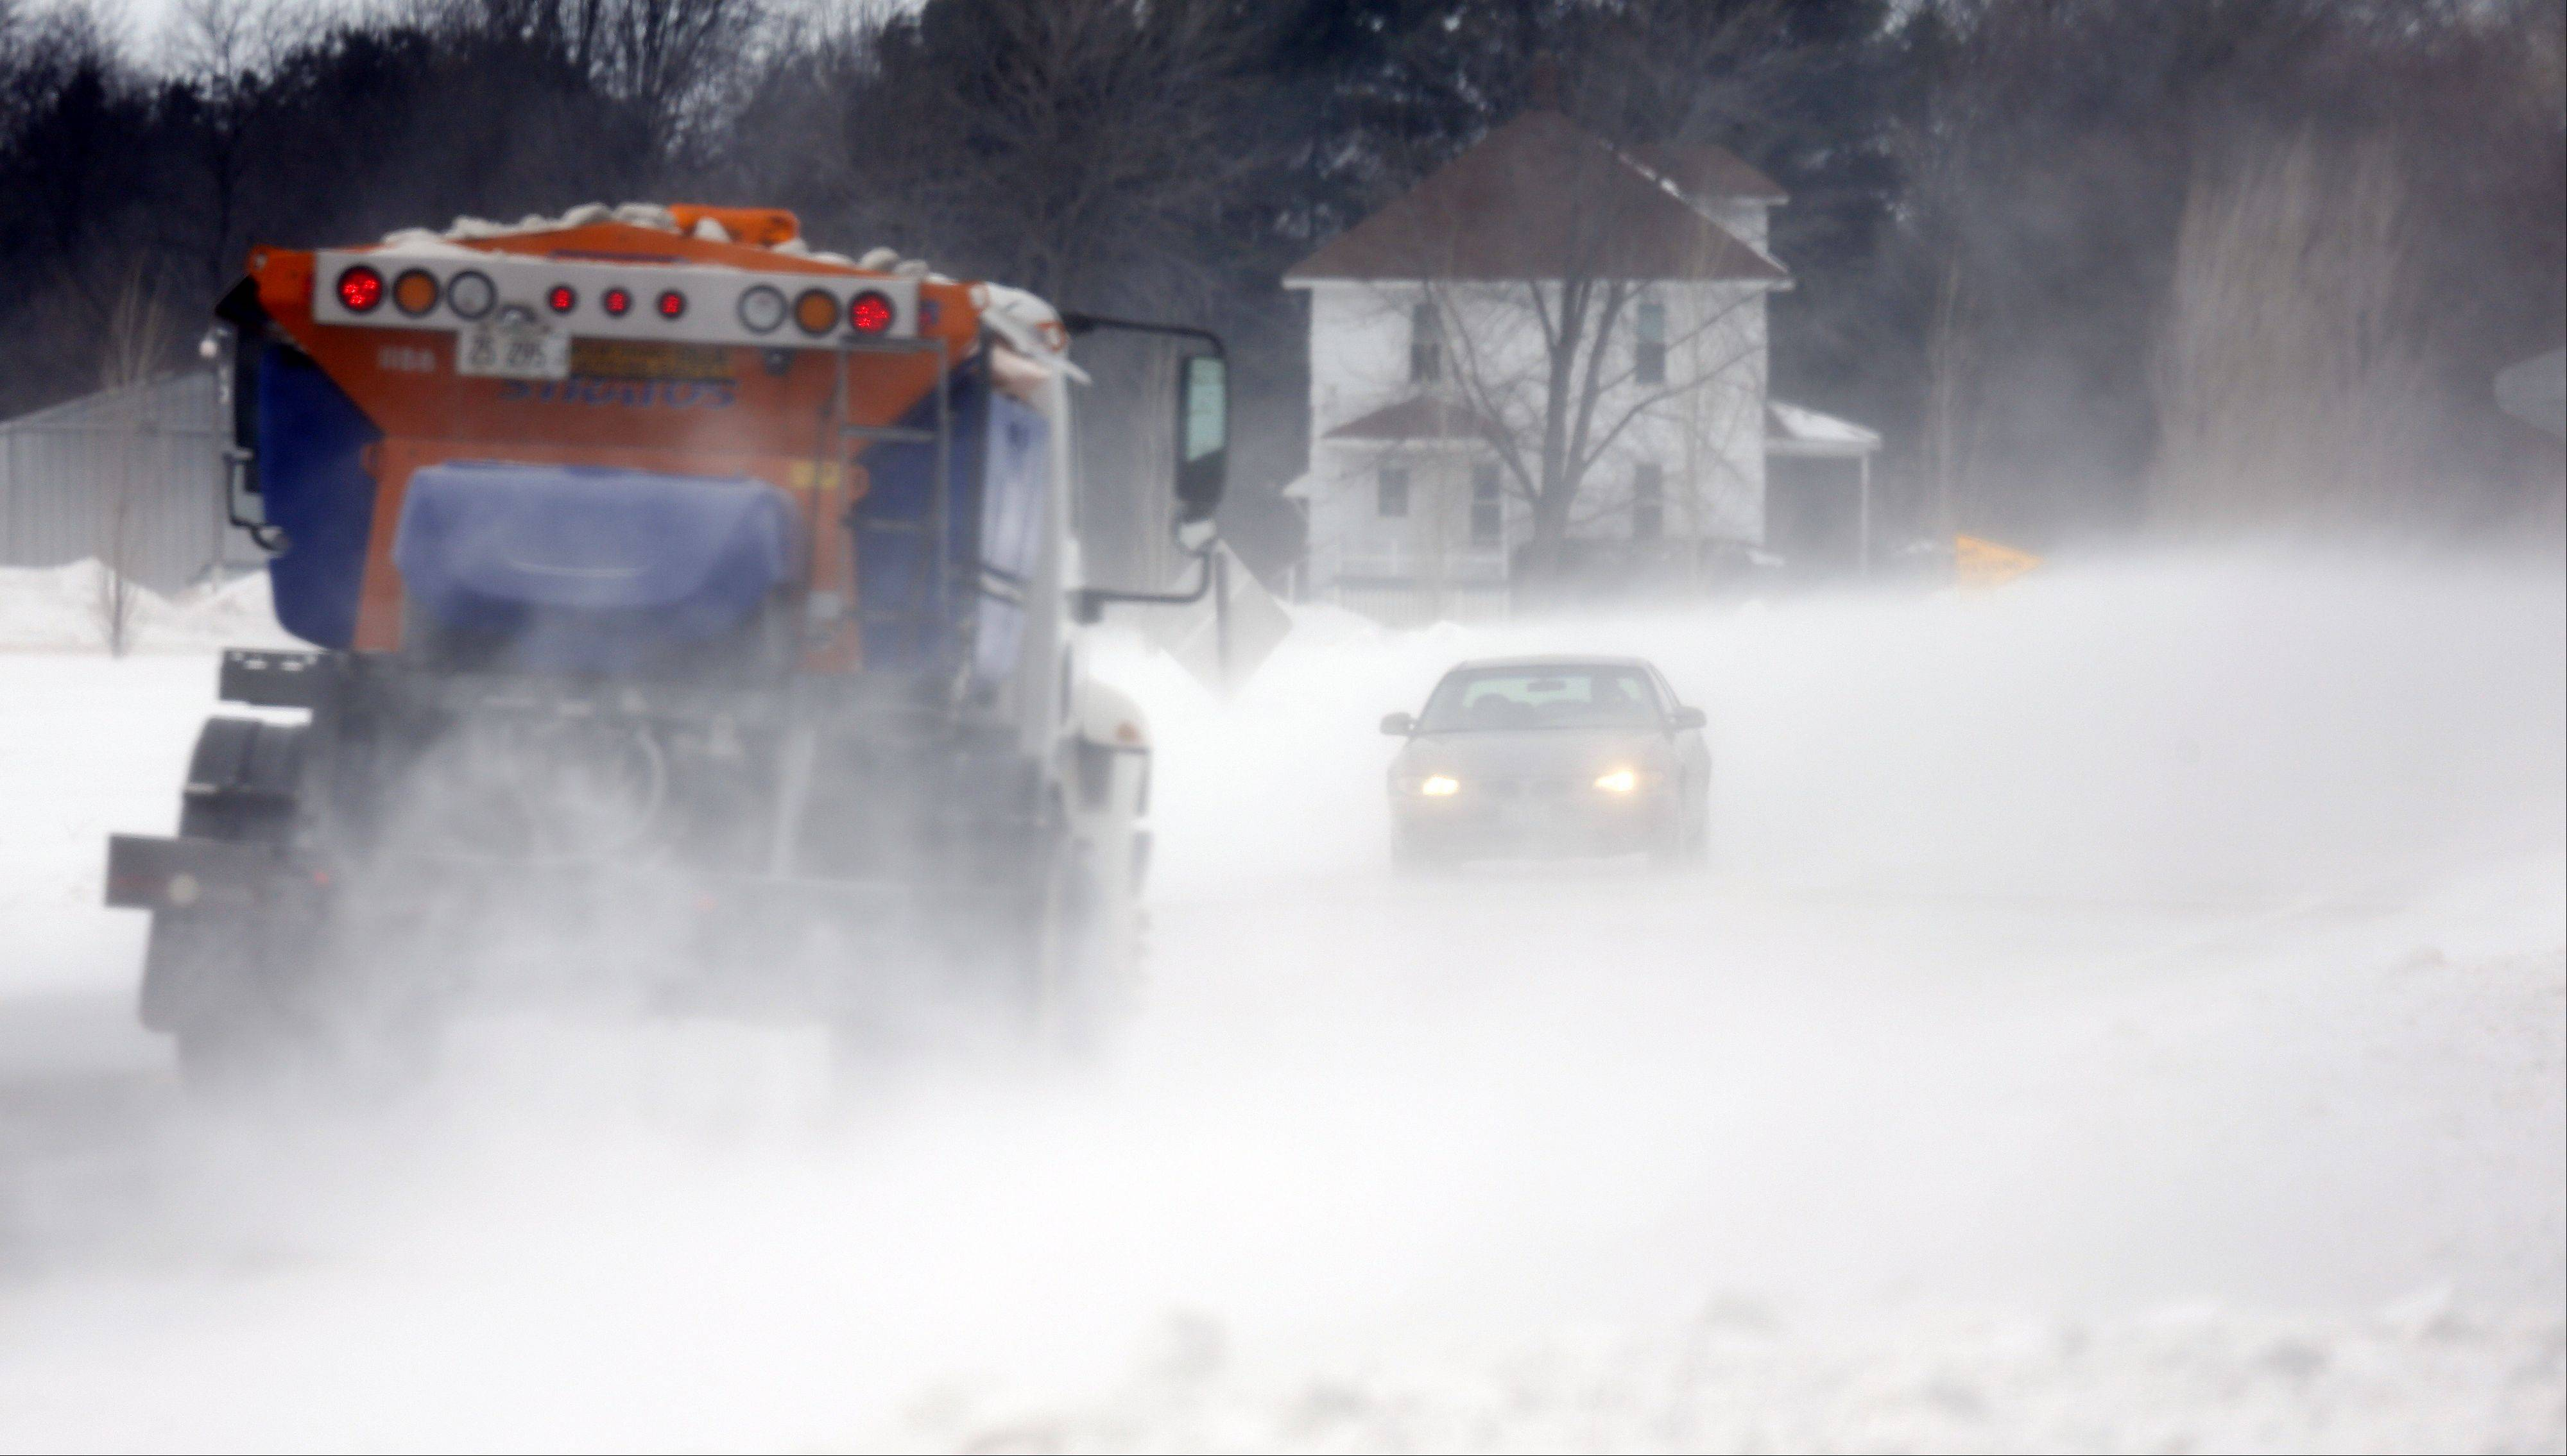 Wind blows snow across Plank Road just East of Route 47 Thursday. The snow forecast for Saturday is leading some event organizers not to chance it.